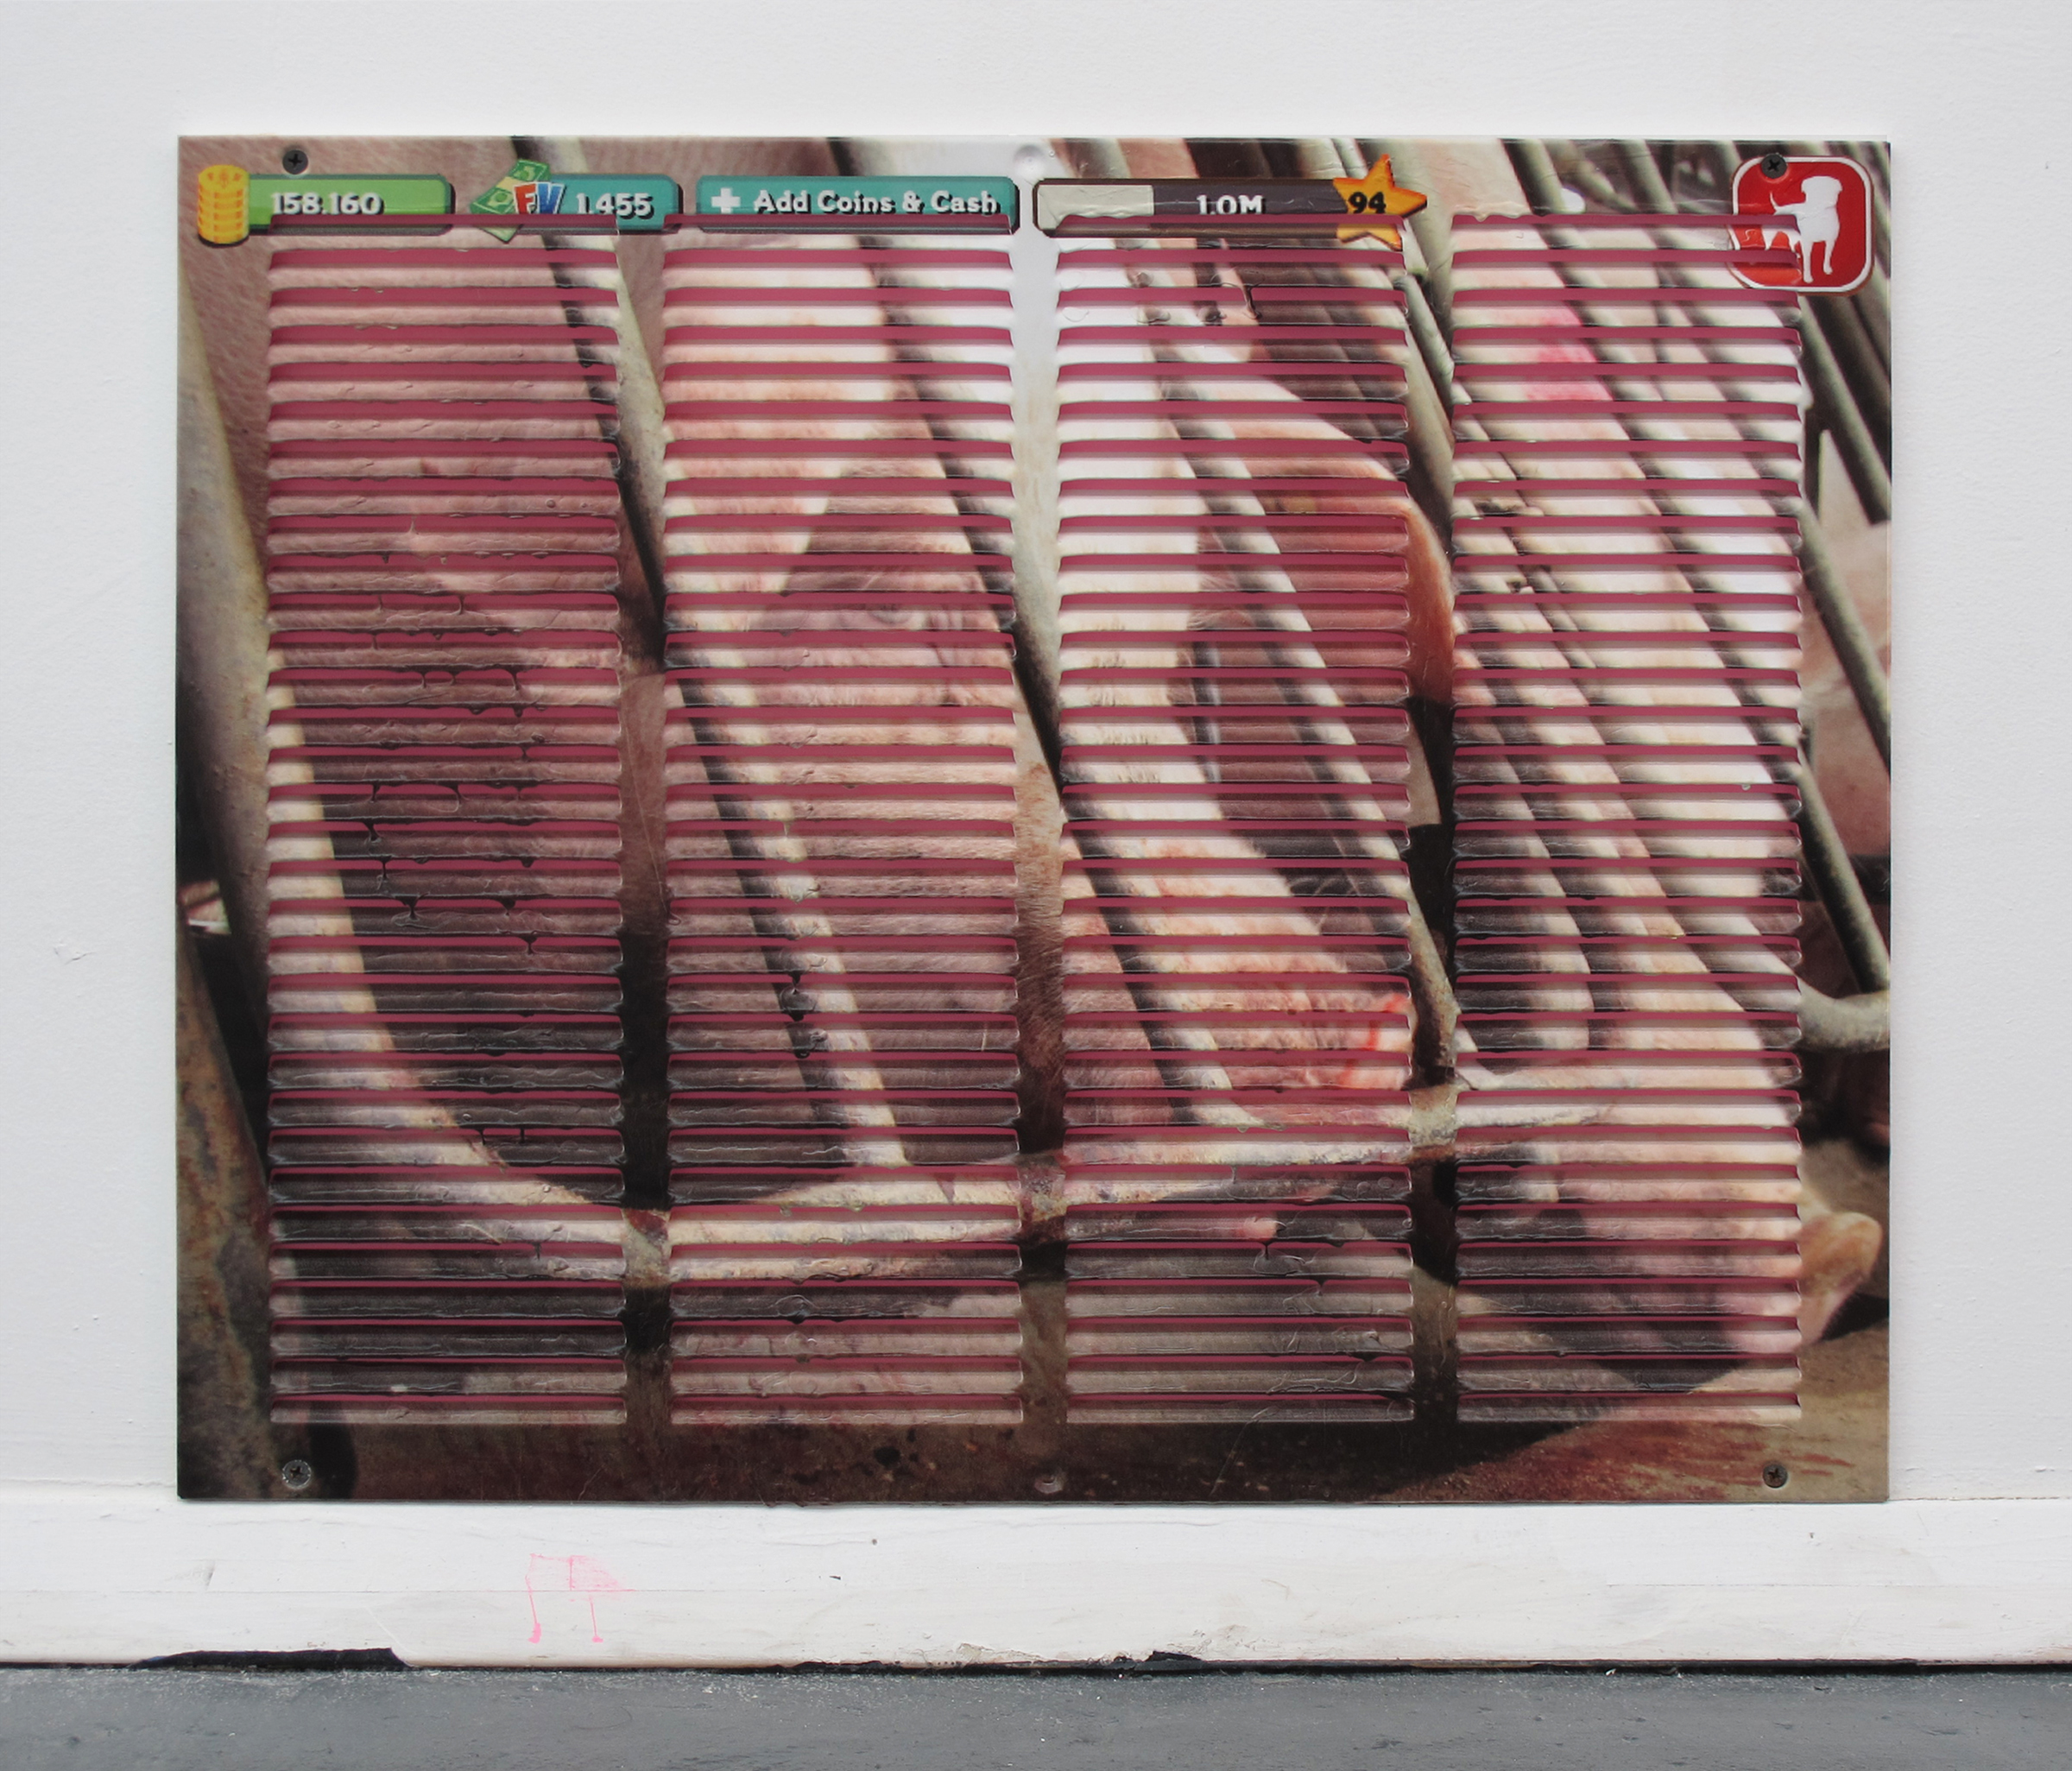 Michael Assiff,  Vent (Gestation Crate) , 2015, inkjet print and latex on powder coated steel, 21.75 x 21.75 inches